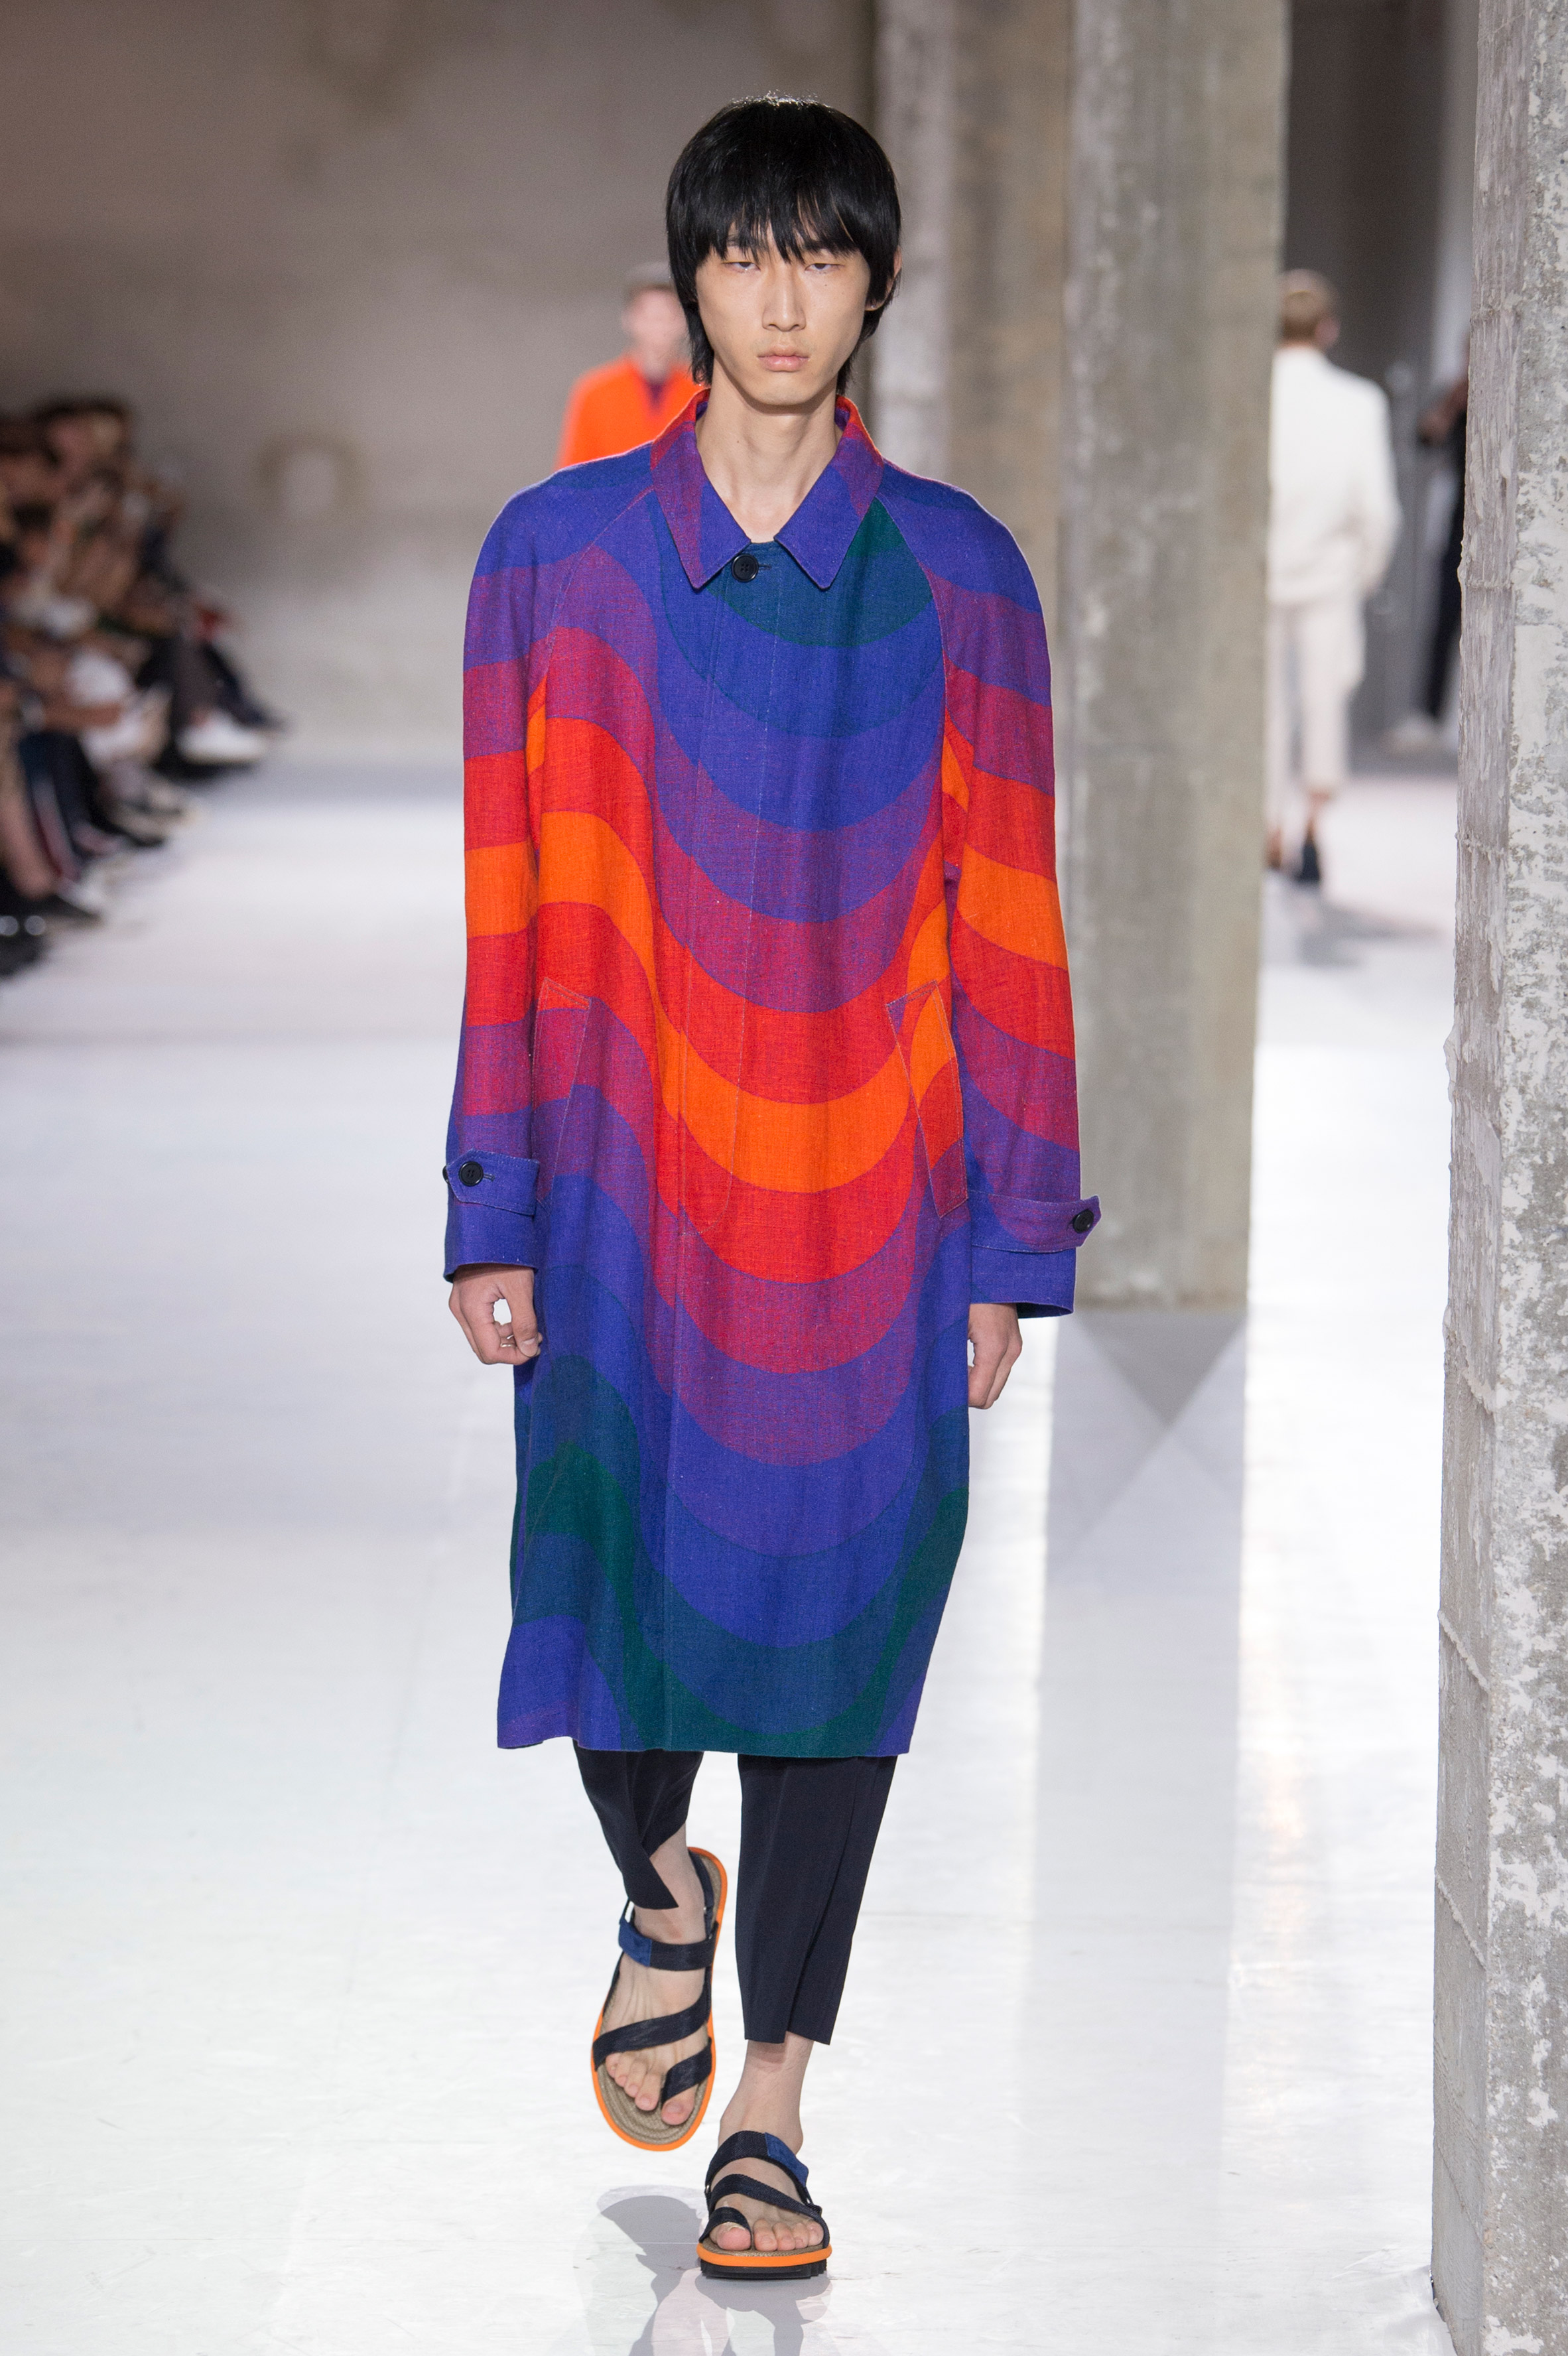 9325e265a09 ... Dries Van Noten collaborates with Panton for colourful SS19 collection  ...